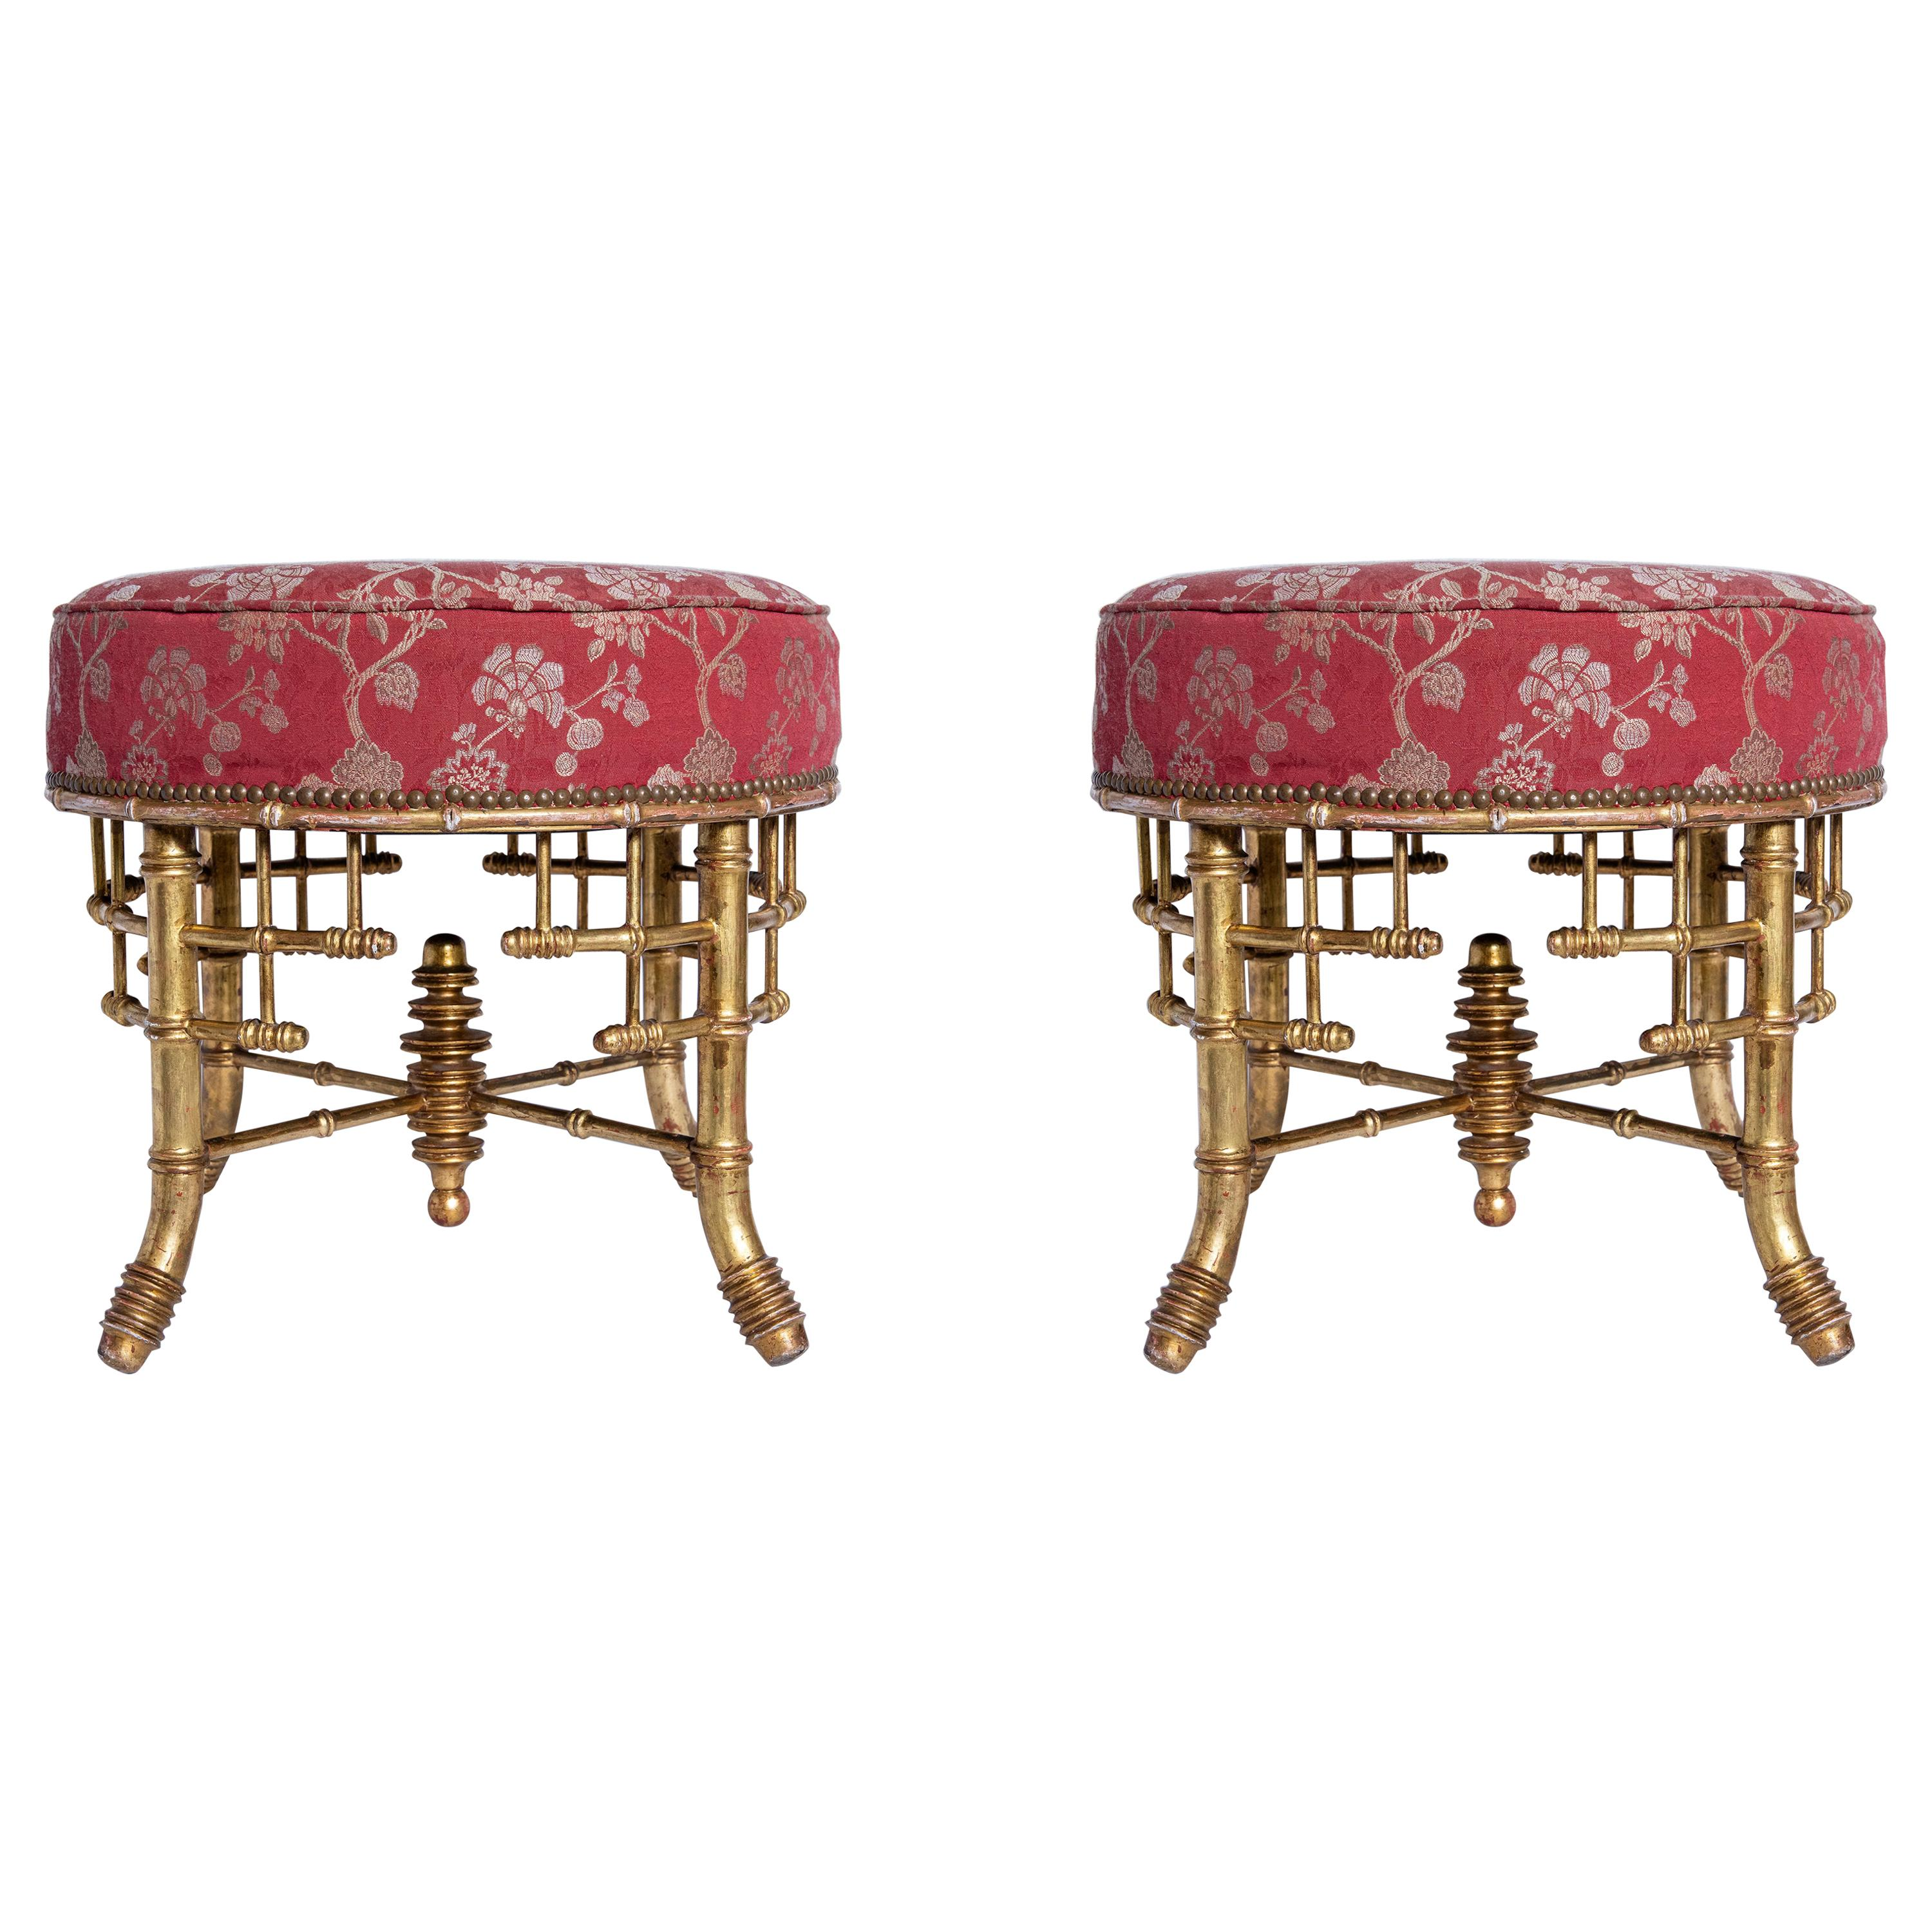 Pair of Faux Bamboo and Gold Leaf Stools. England, Late 19th Century